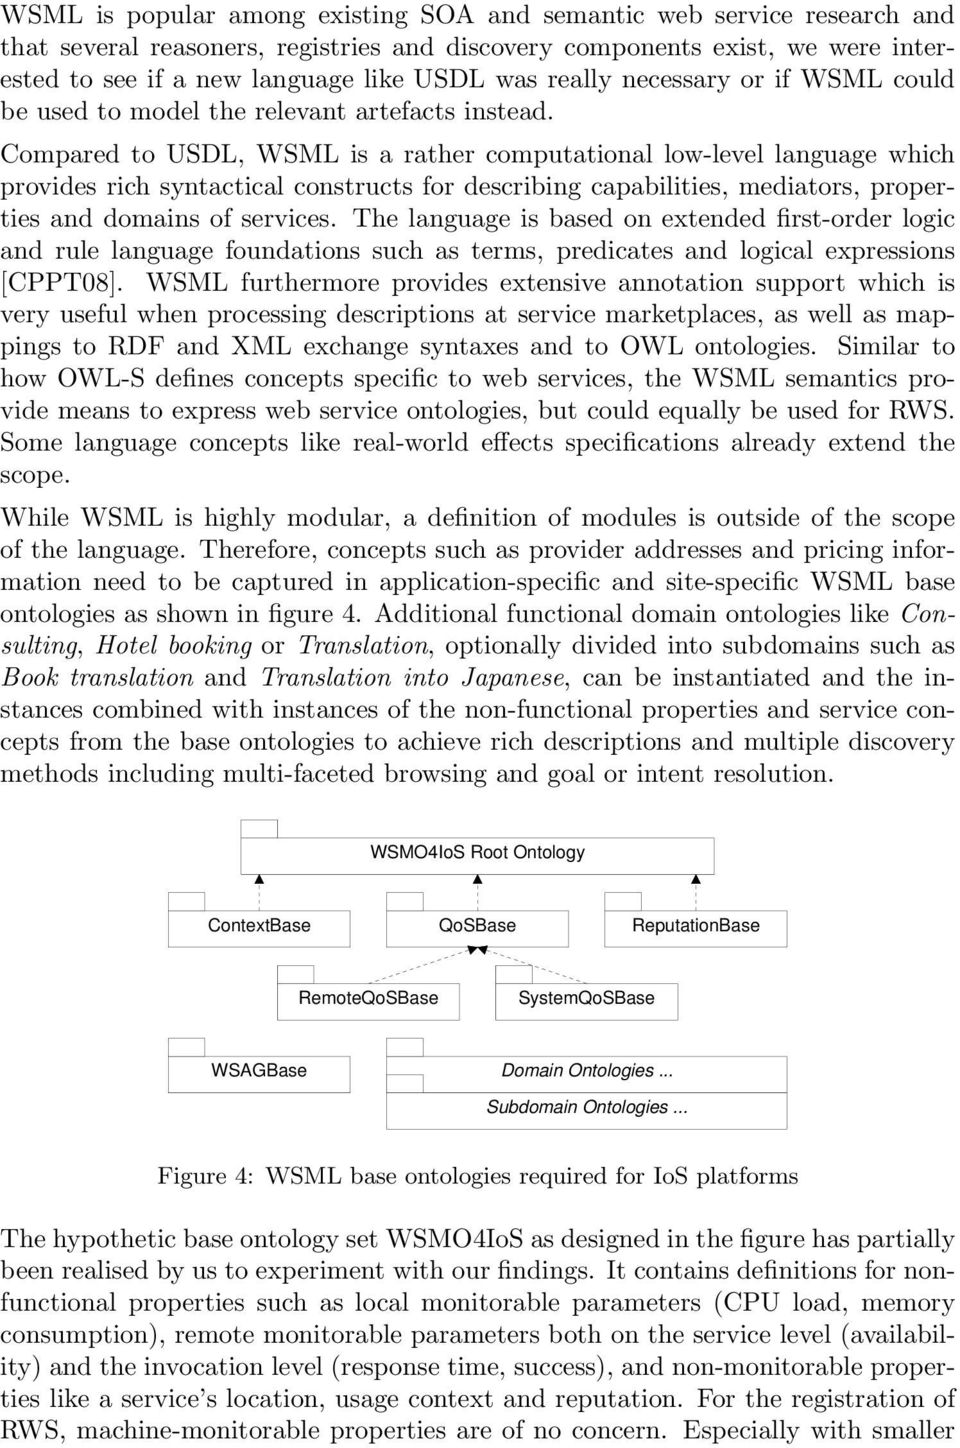 Compared to USDL, WSML is a rather computational low-level language which provides rich syntactical constructs for describing capabilities, mediators, properties and domains of services.